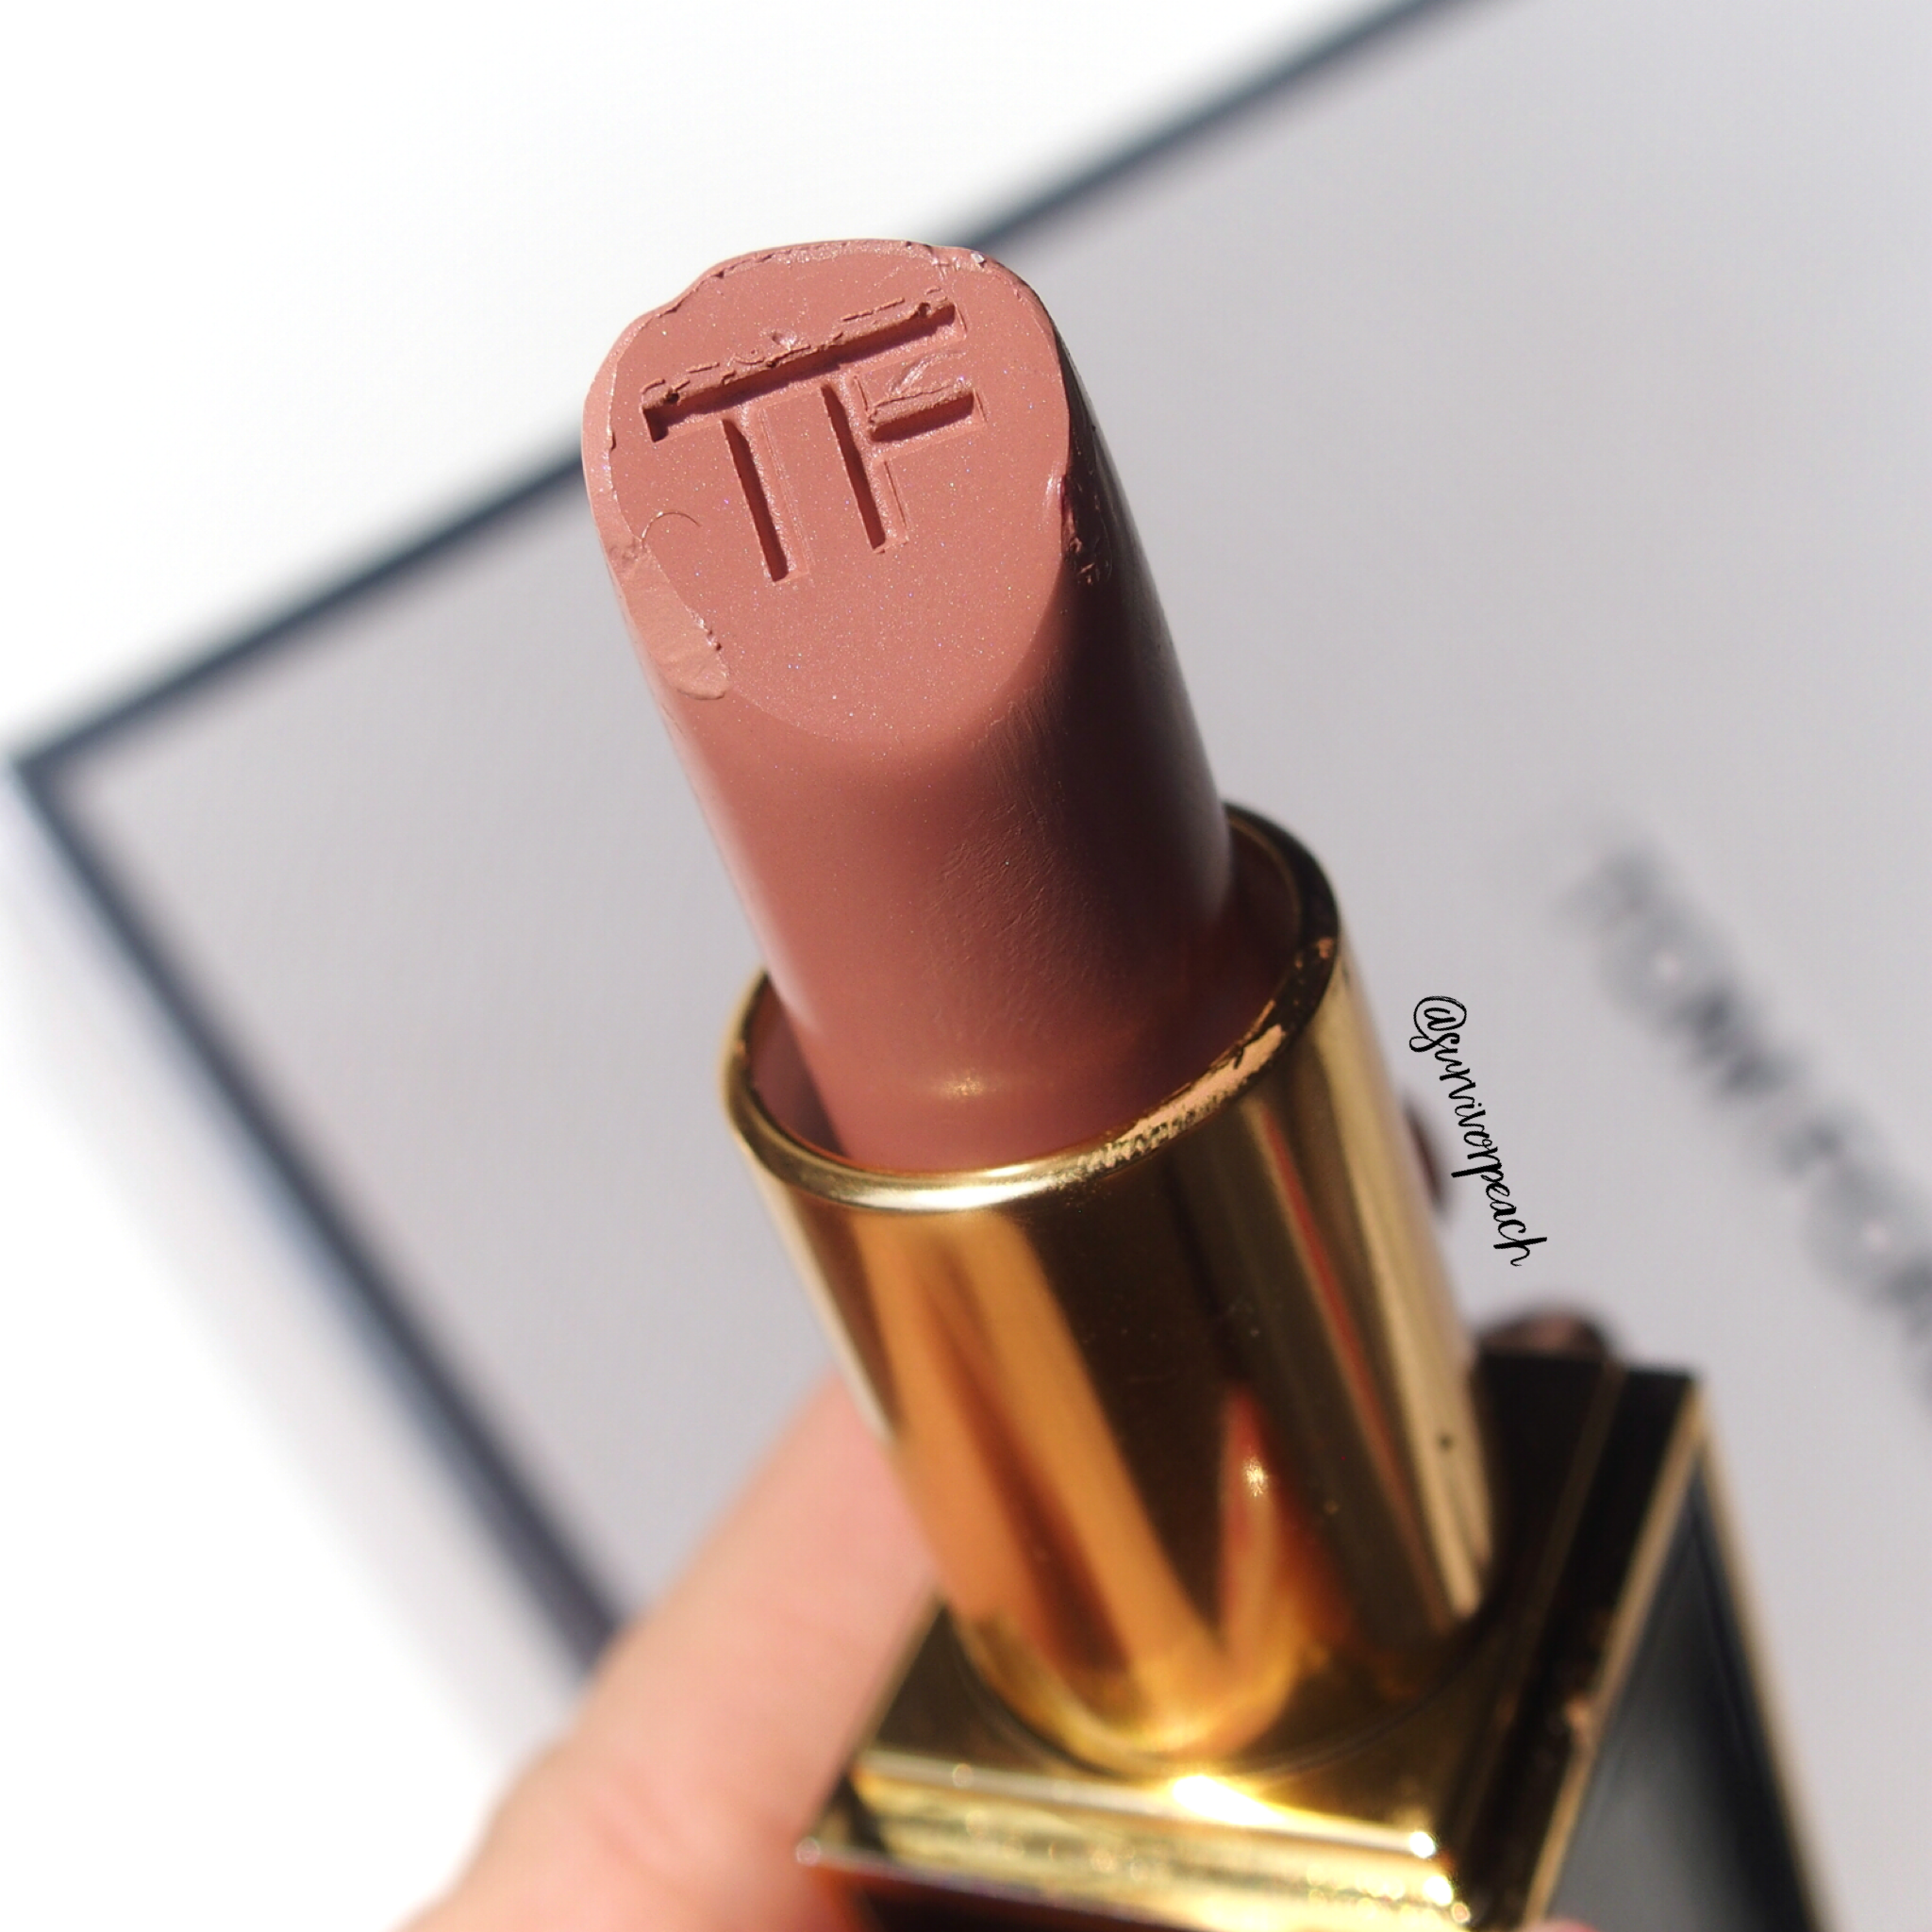 Tom Ford Lipsticks in First Time